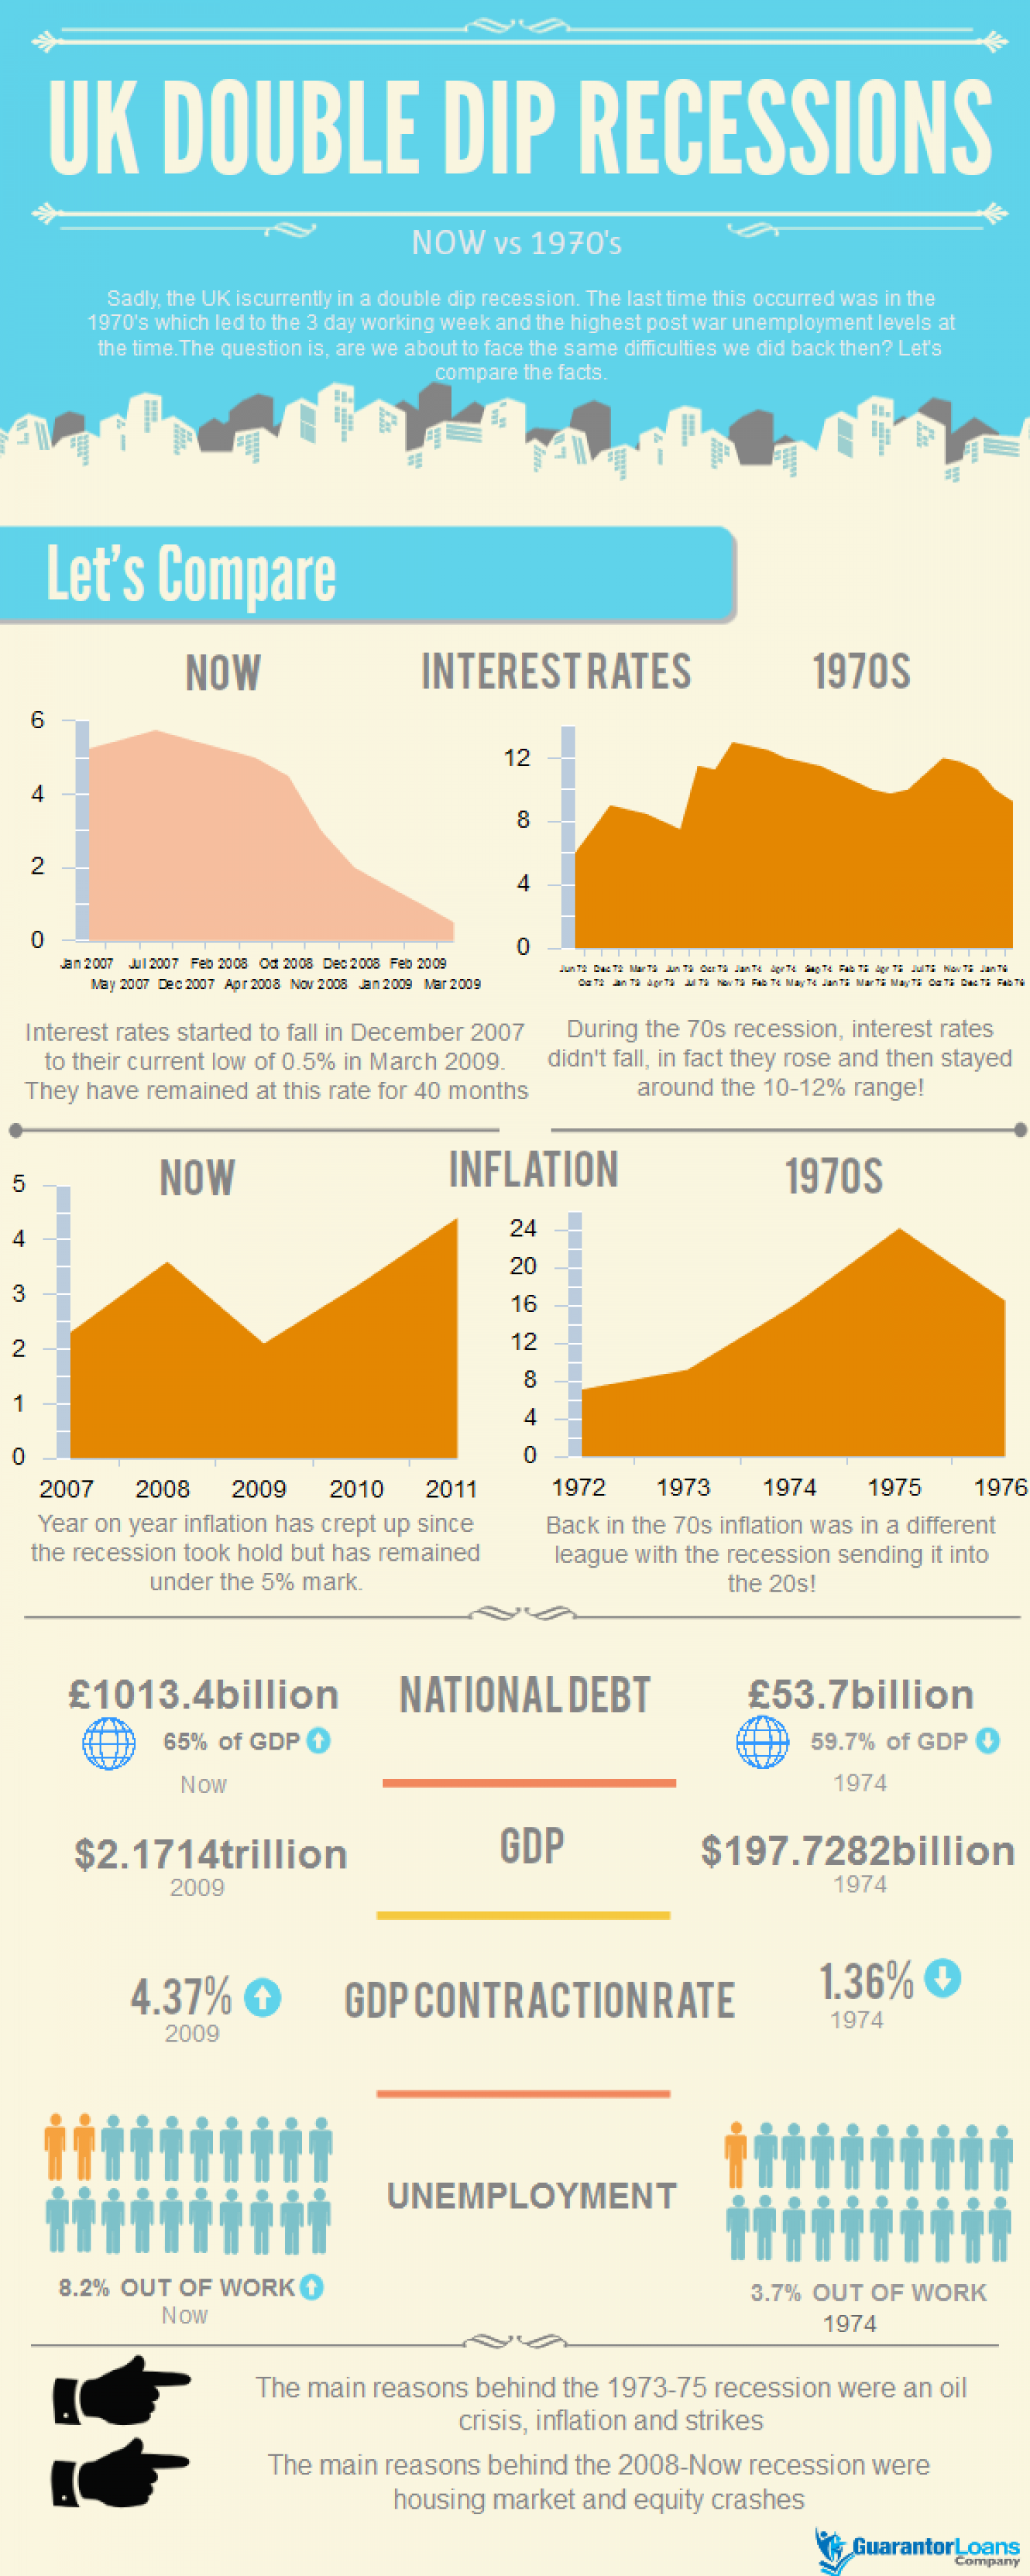 Comparing Double Dip Recessions Infographic